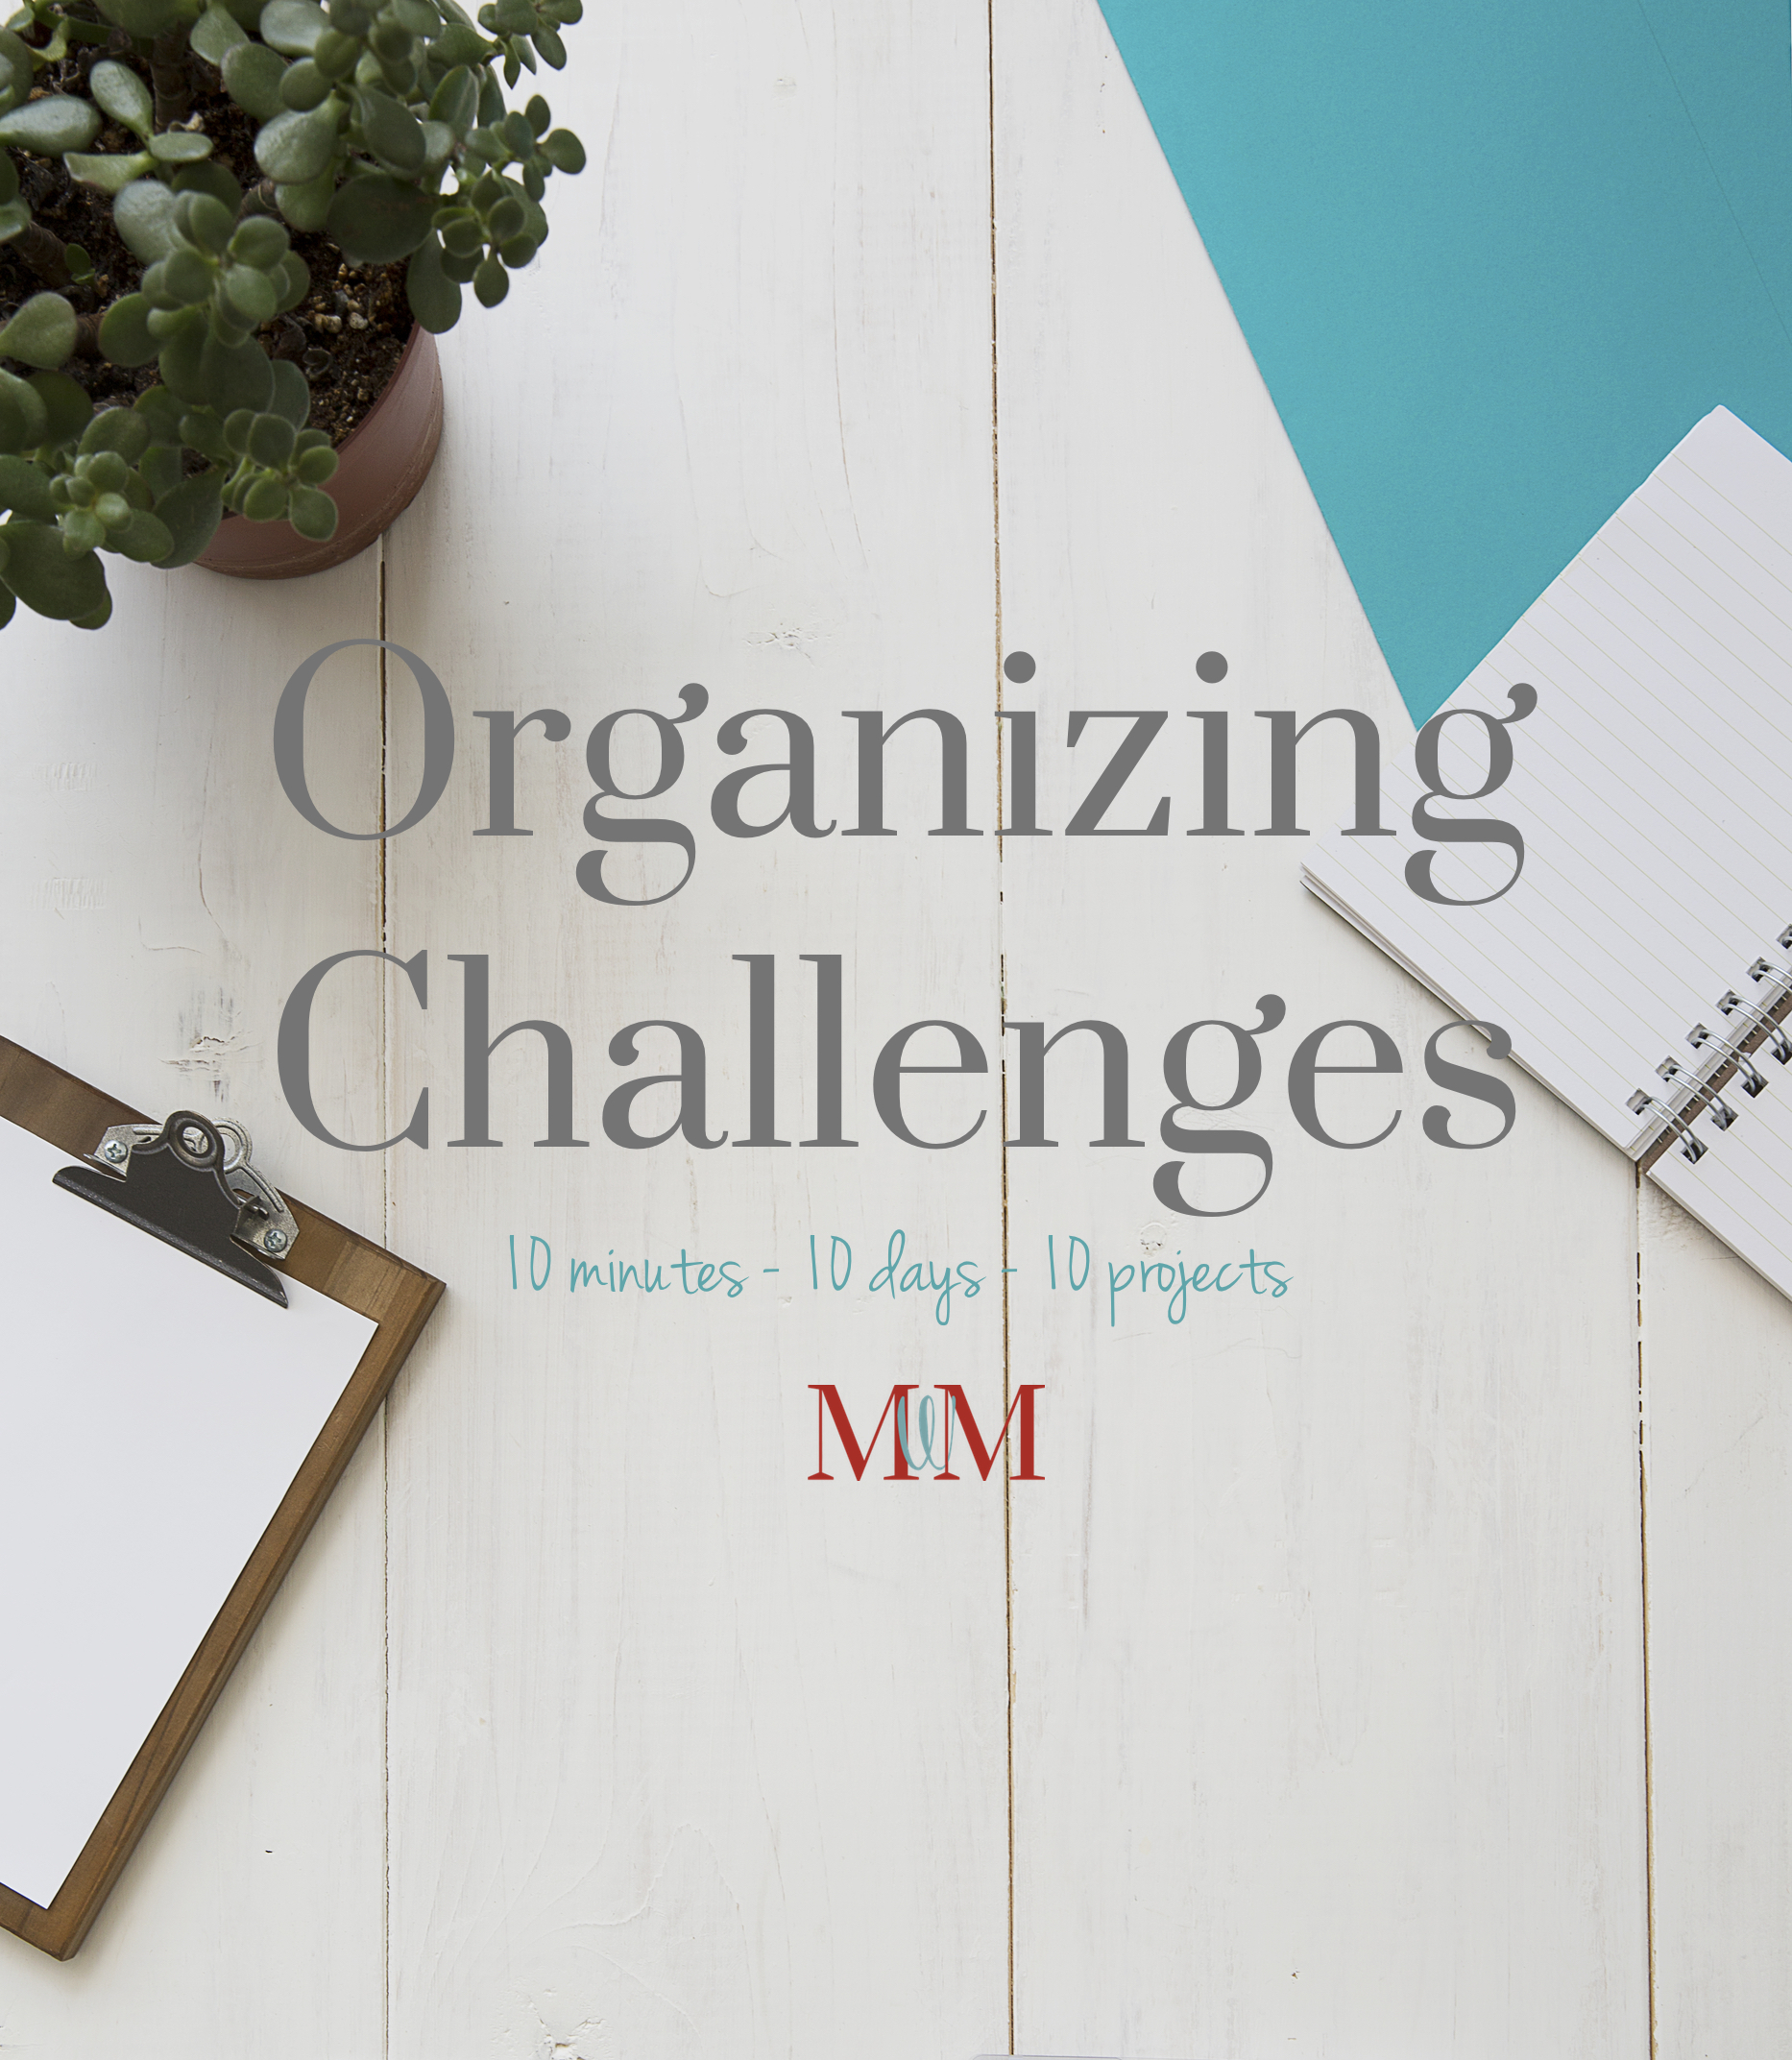 organizing challenges morganize with me morgan tyree